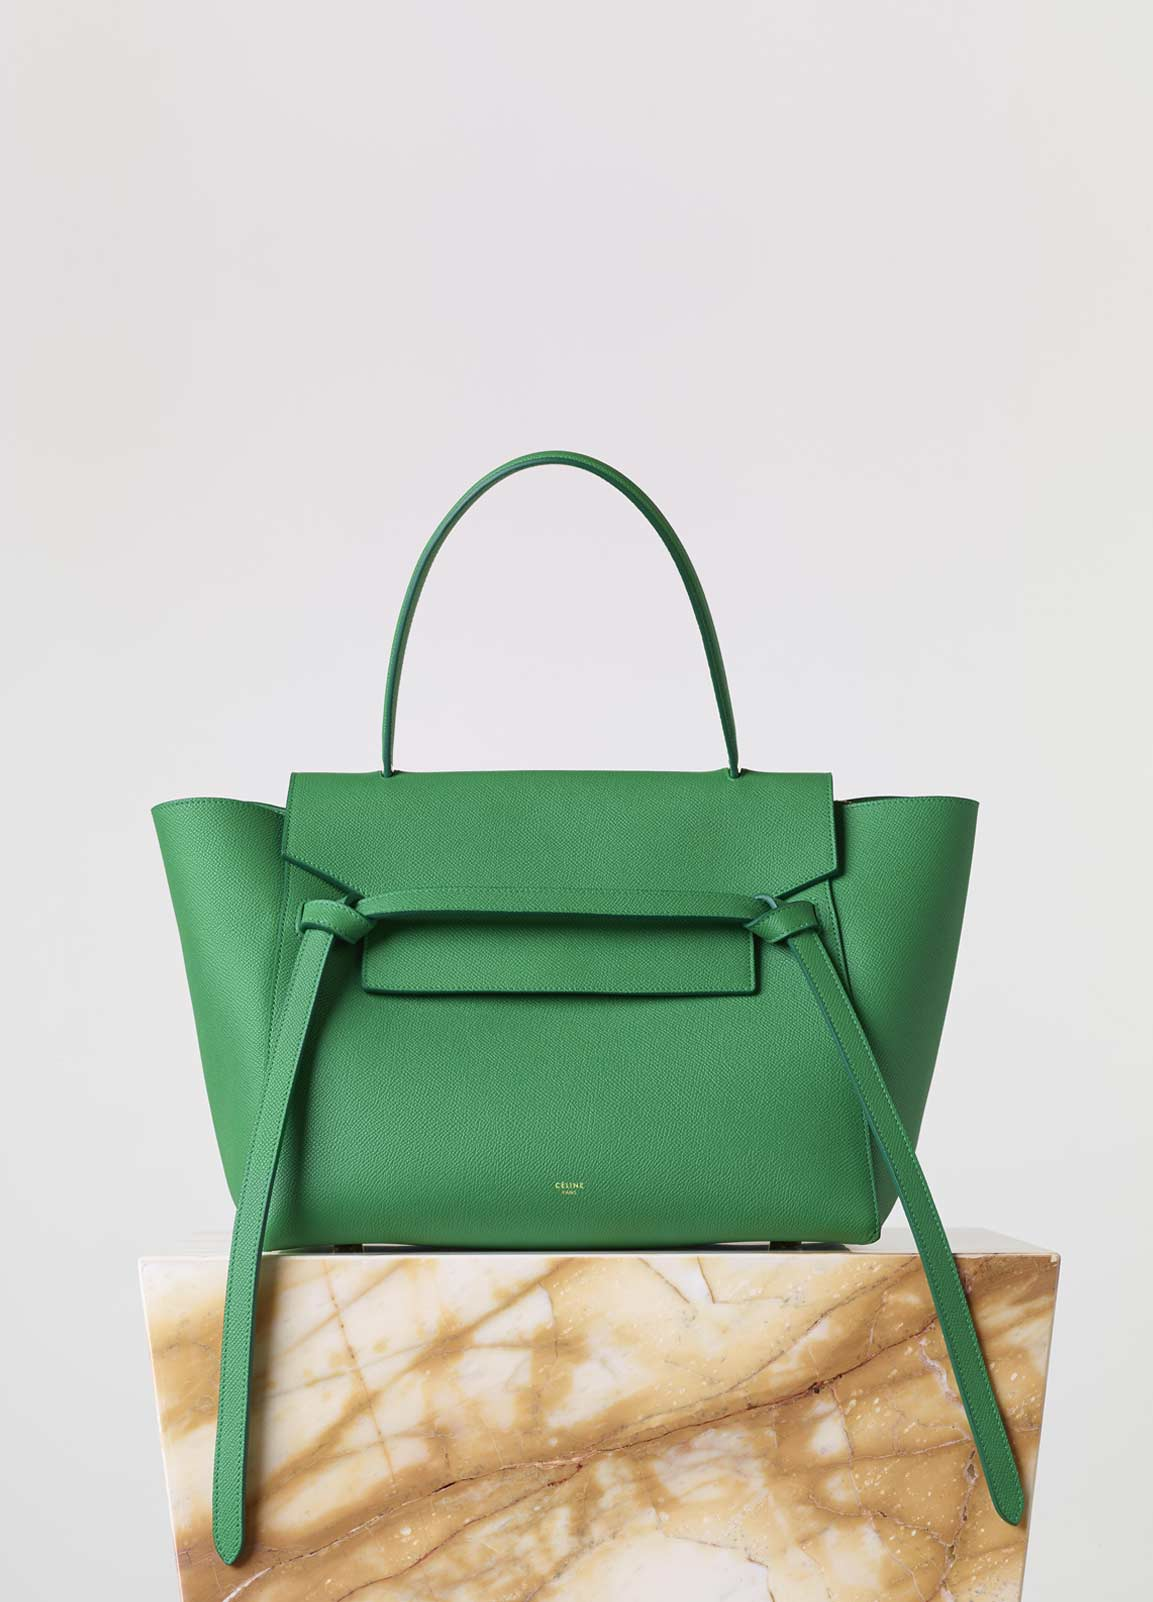 celine luggage tote handbags - Celine Pre-Fall 2015 Bag Collection featuring new Sangle Hobo ...